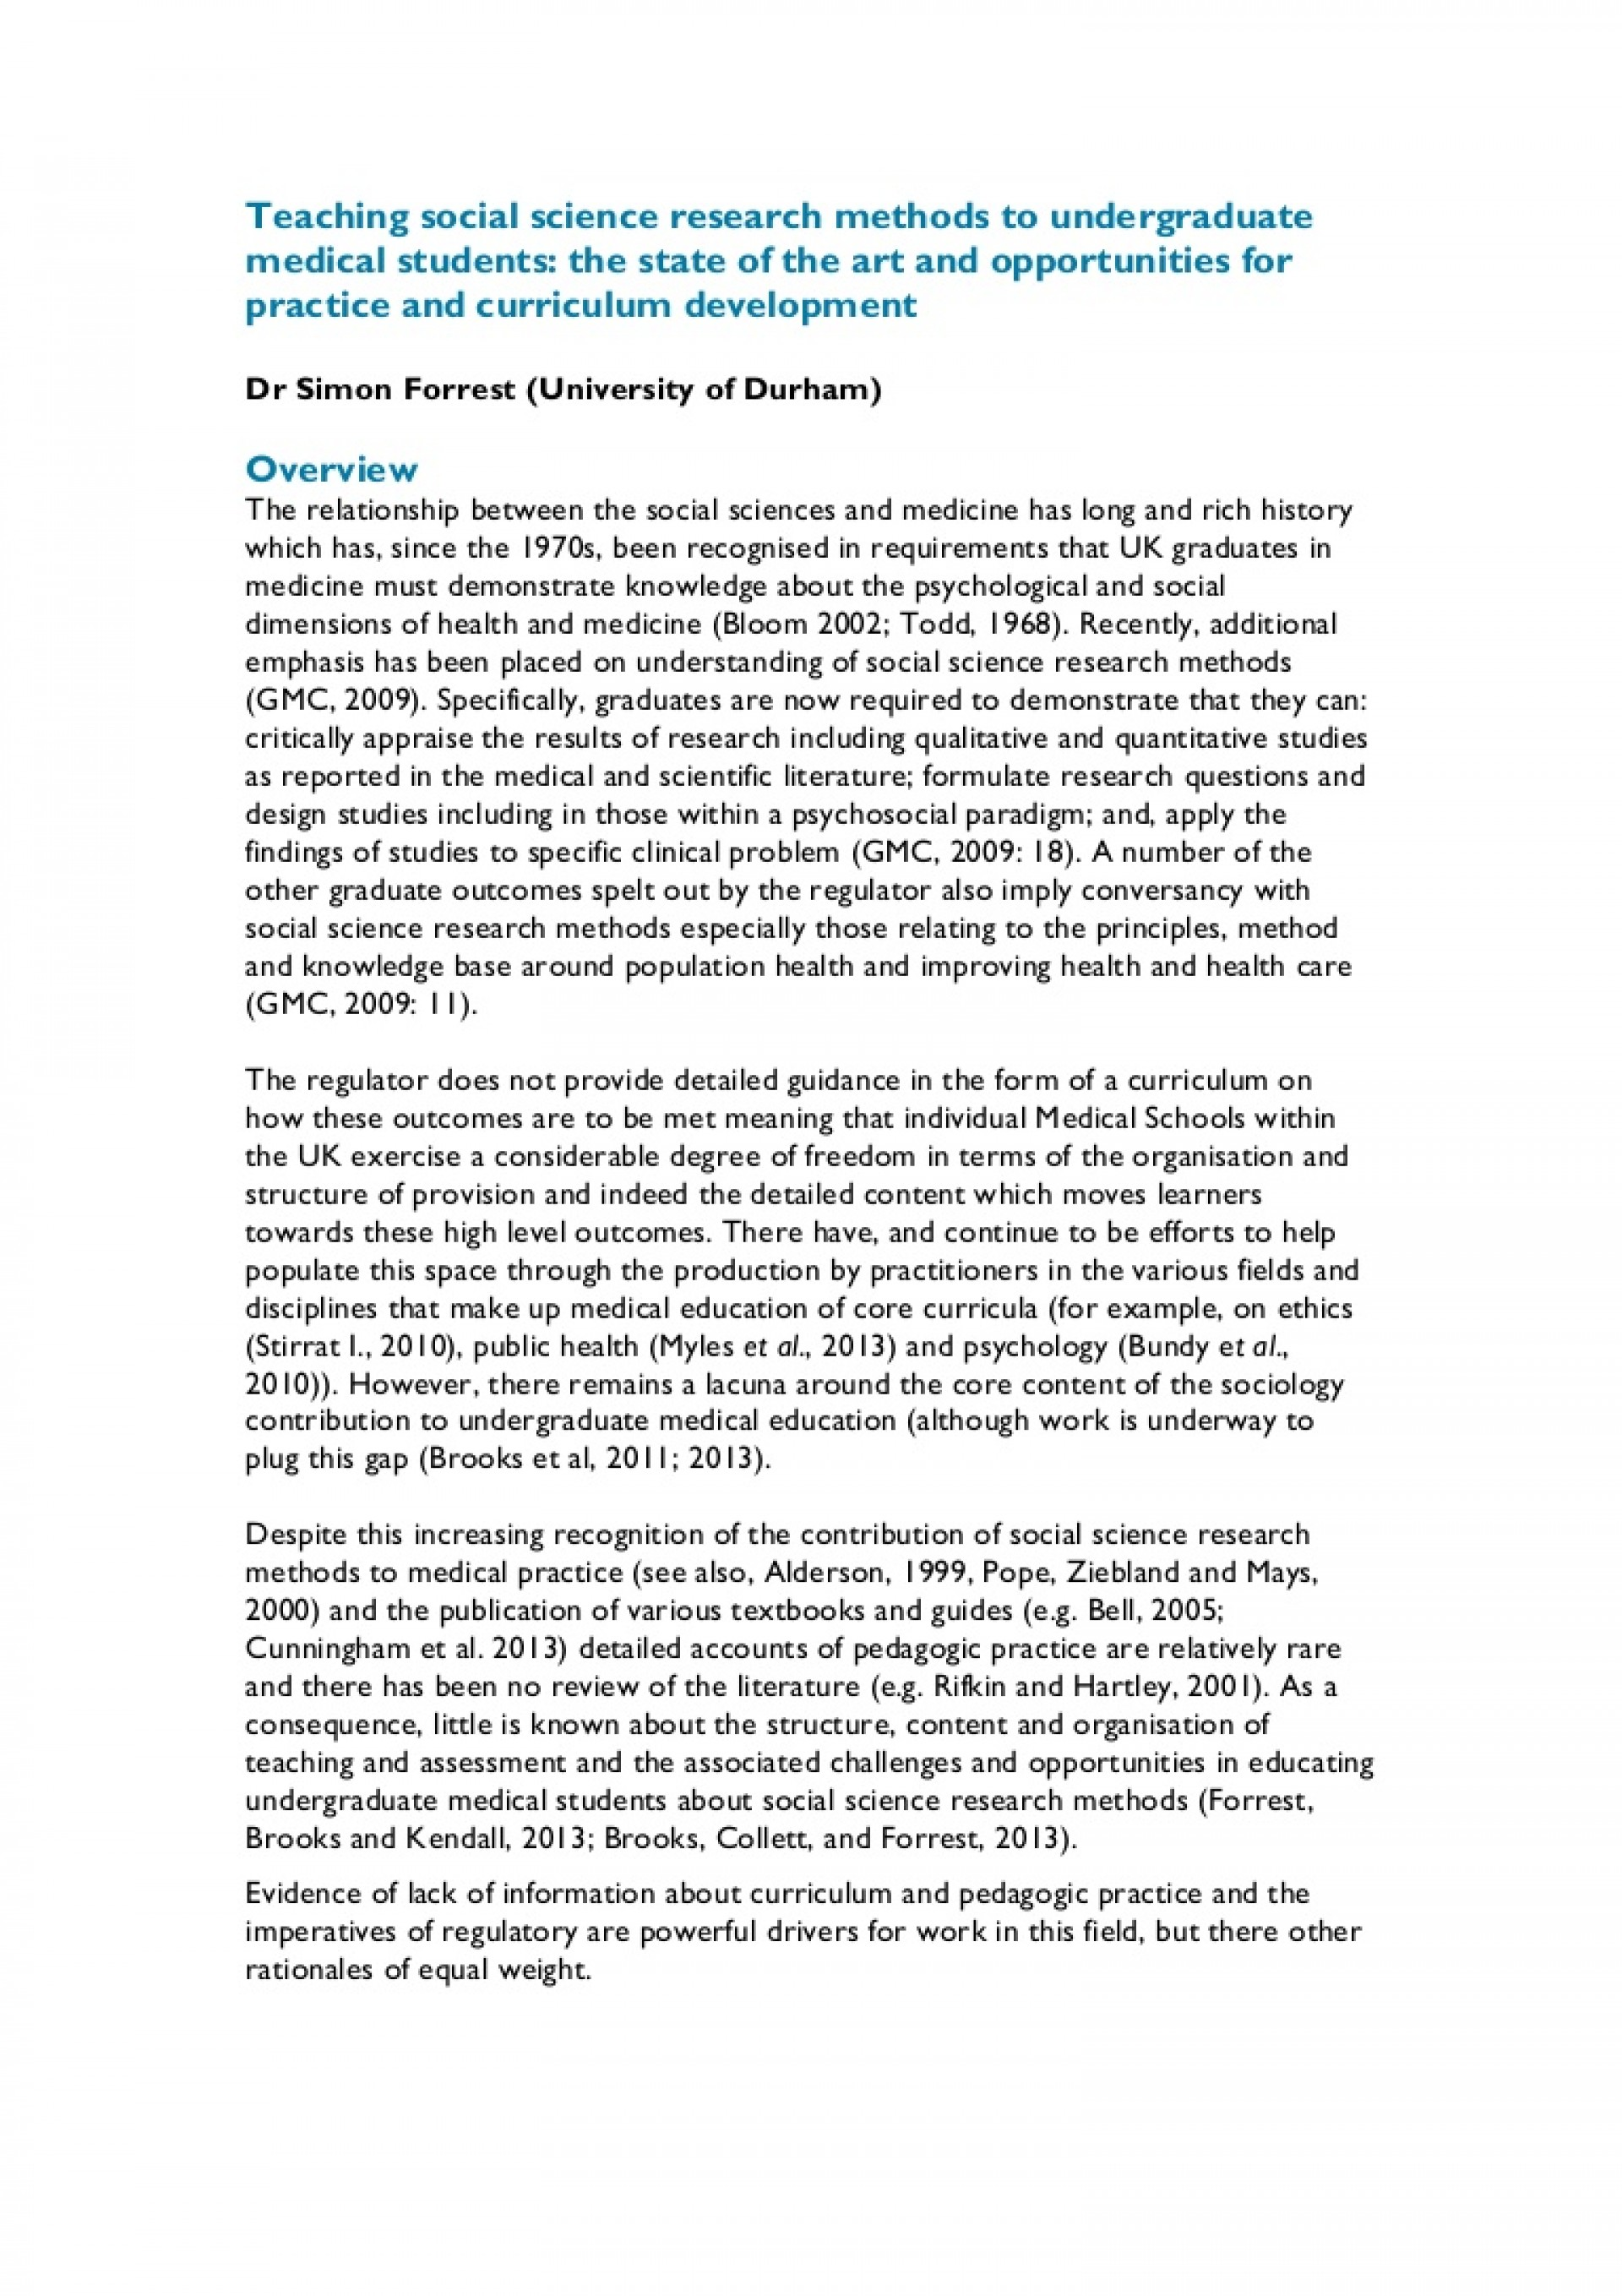 Sections of a social science research paper